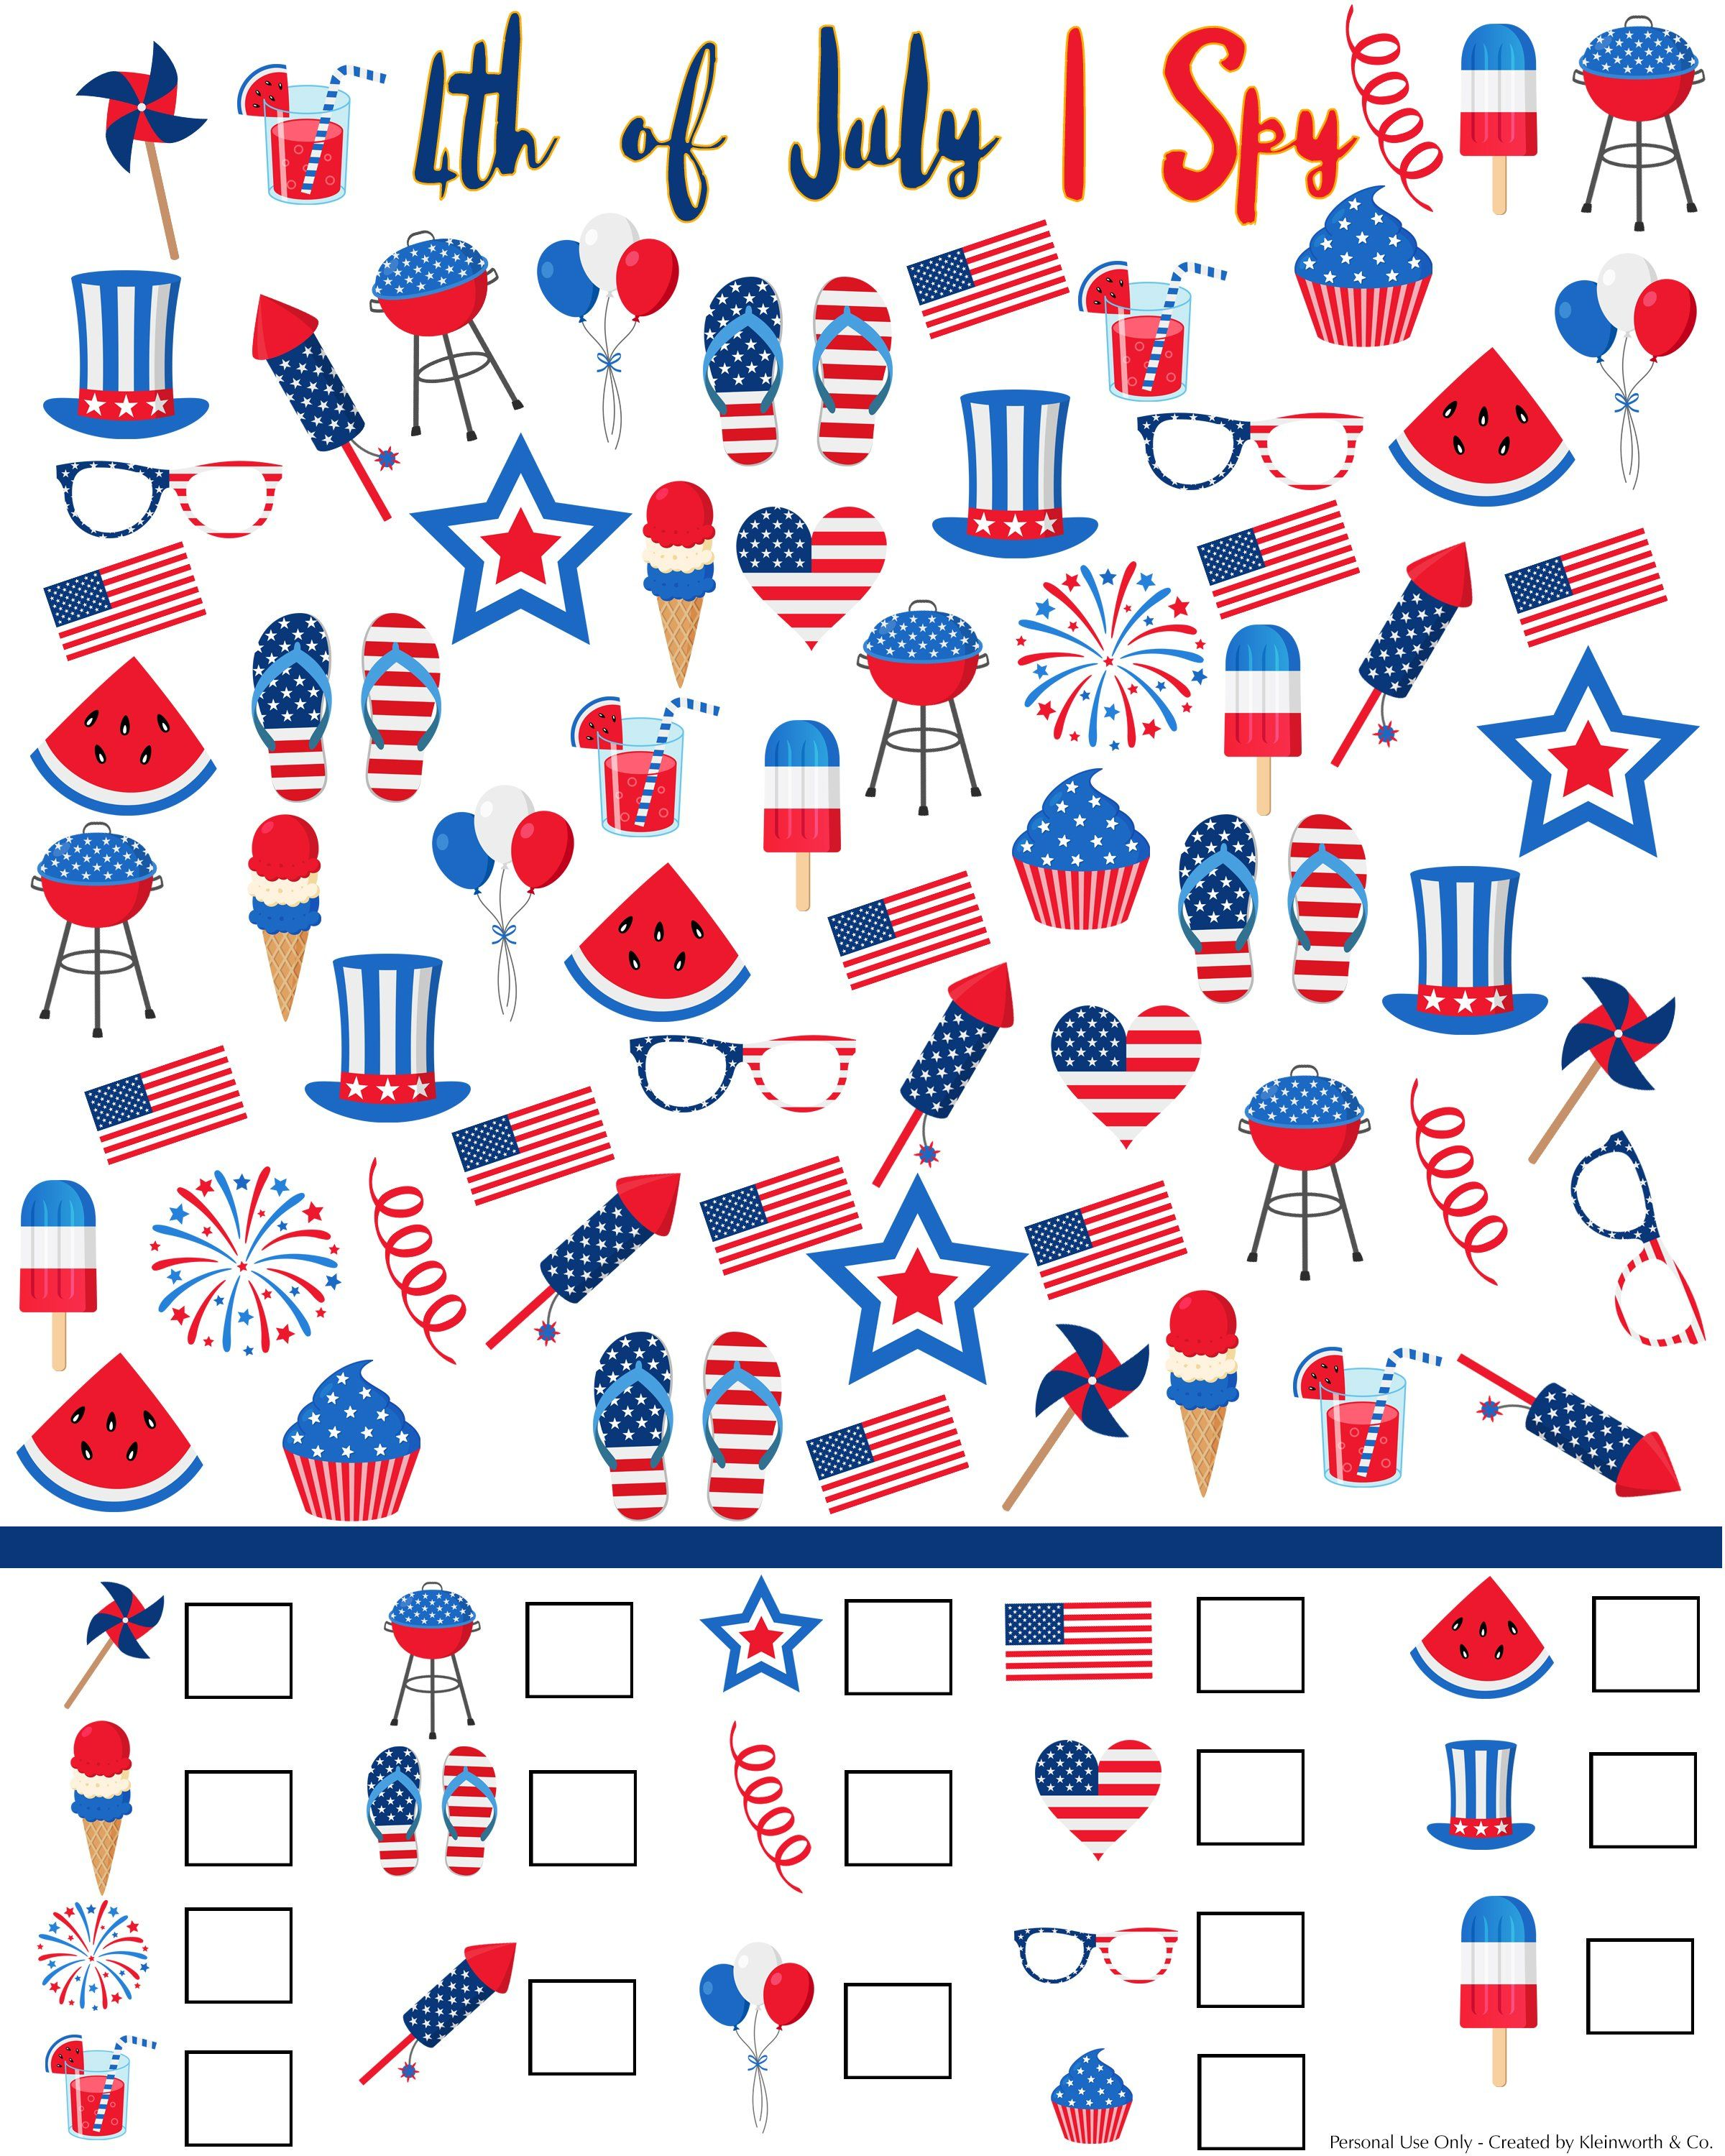 4th Of July I Spy Printable Free Printable To Keep The Kids Busy While They Wait Fourth Of July Crafts For Kids Holiday Activities For Kids 4th Of July Games [ 3000 x 2400 Pixel ]